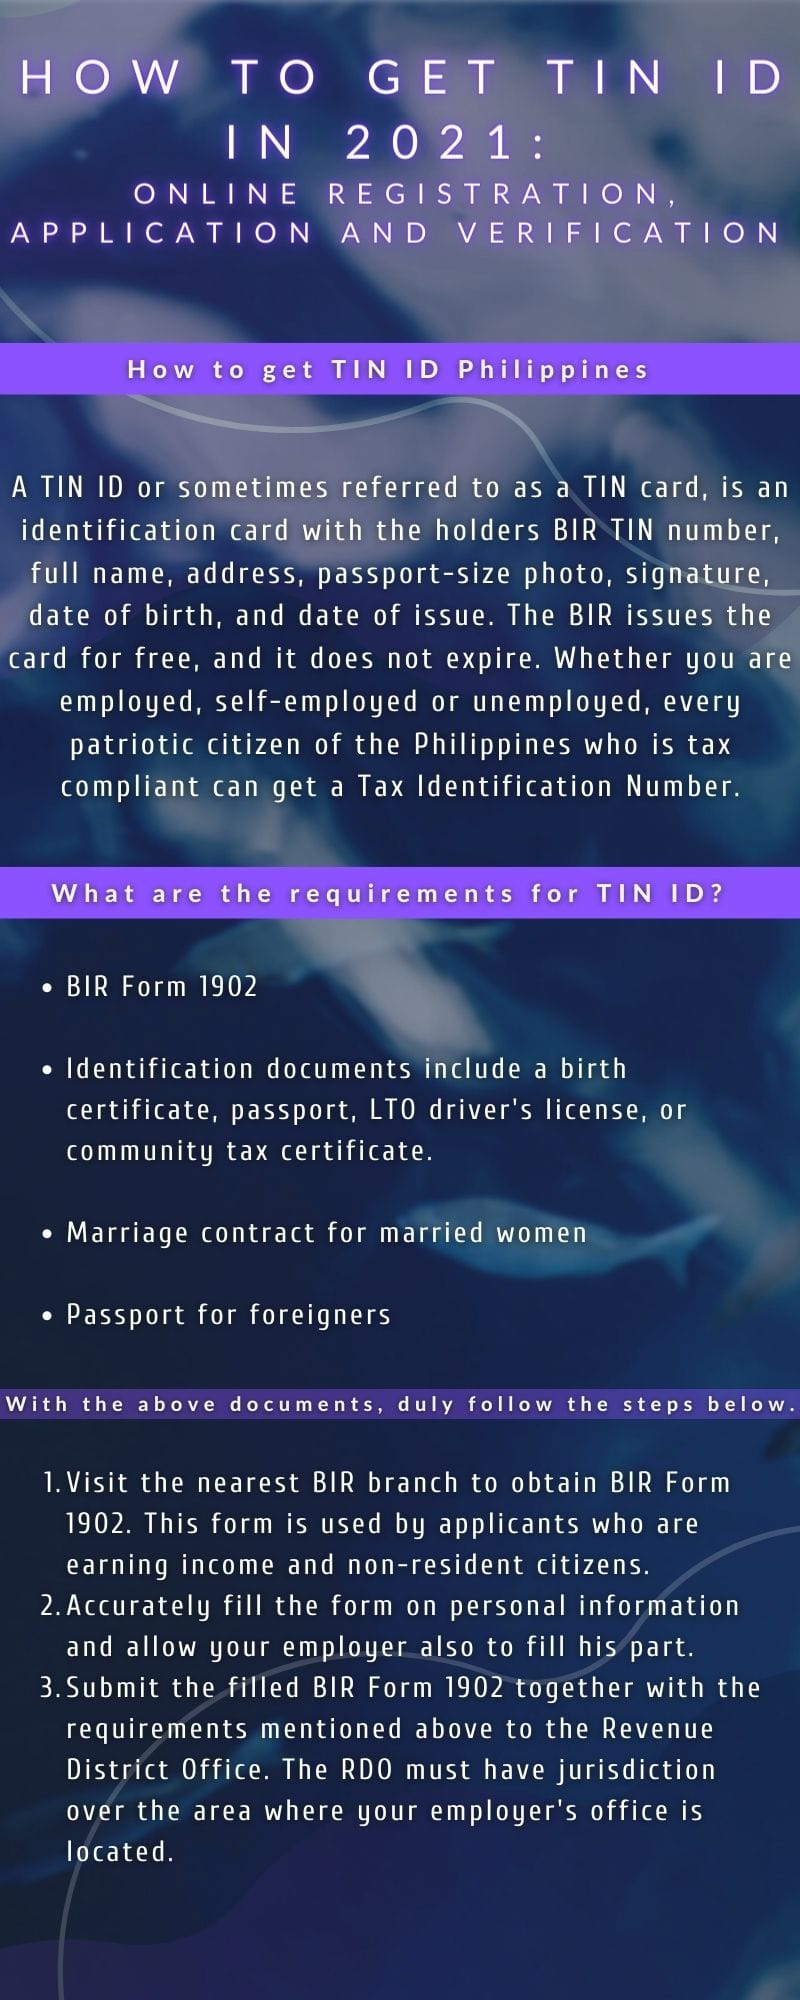 How to get TIN ID